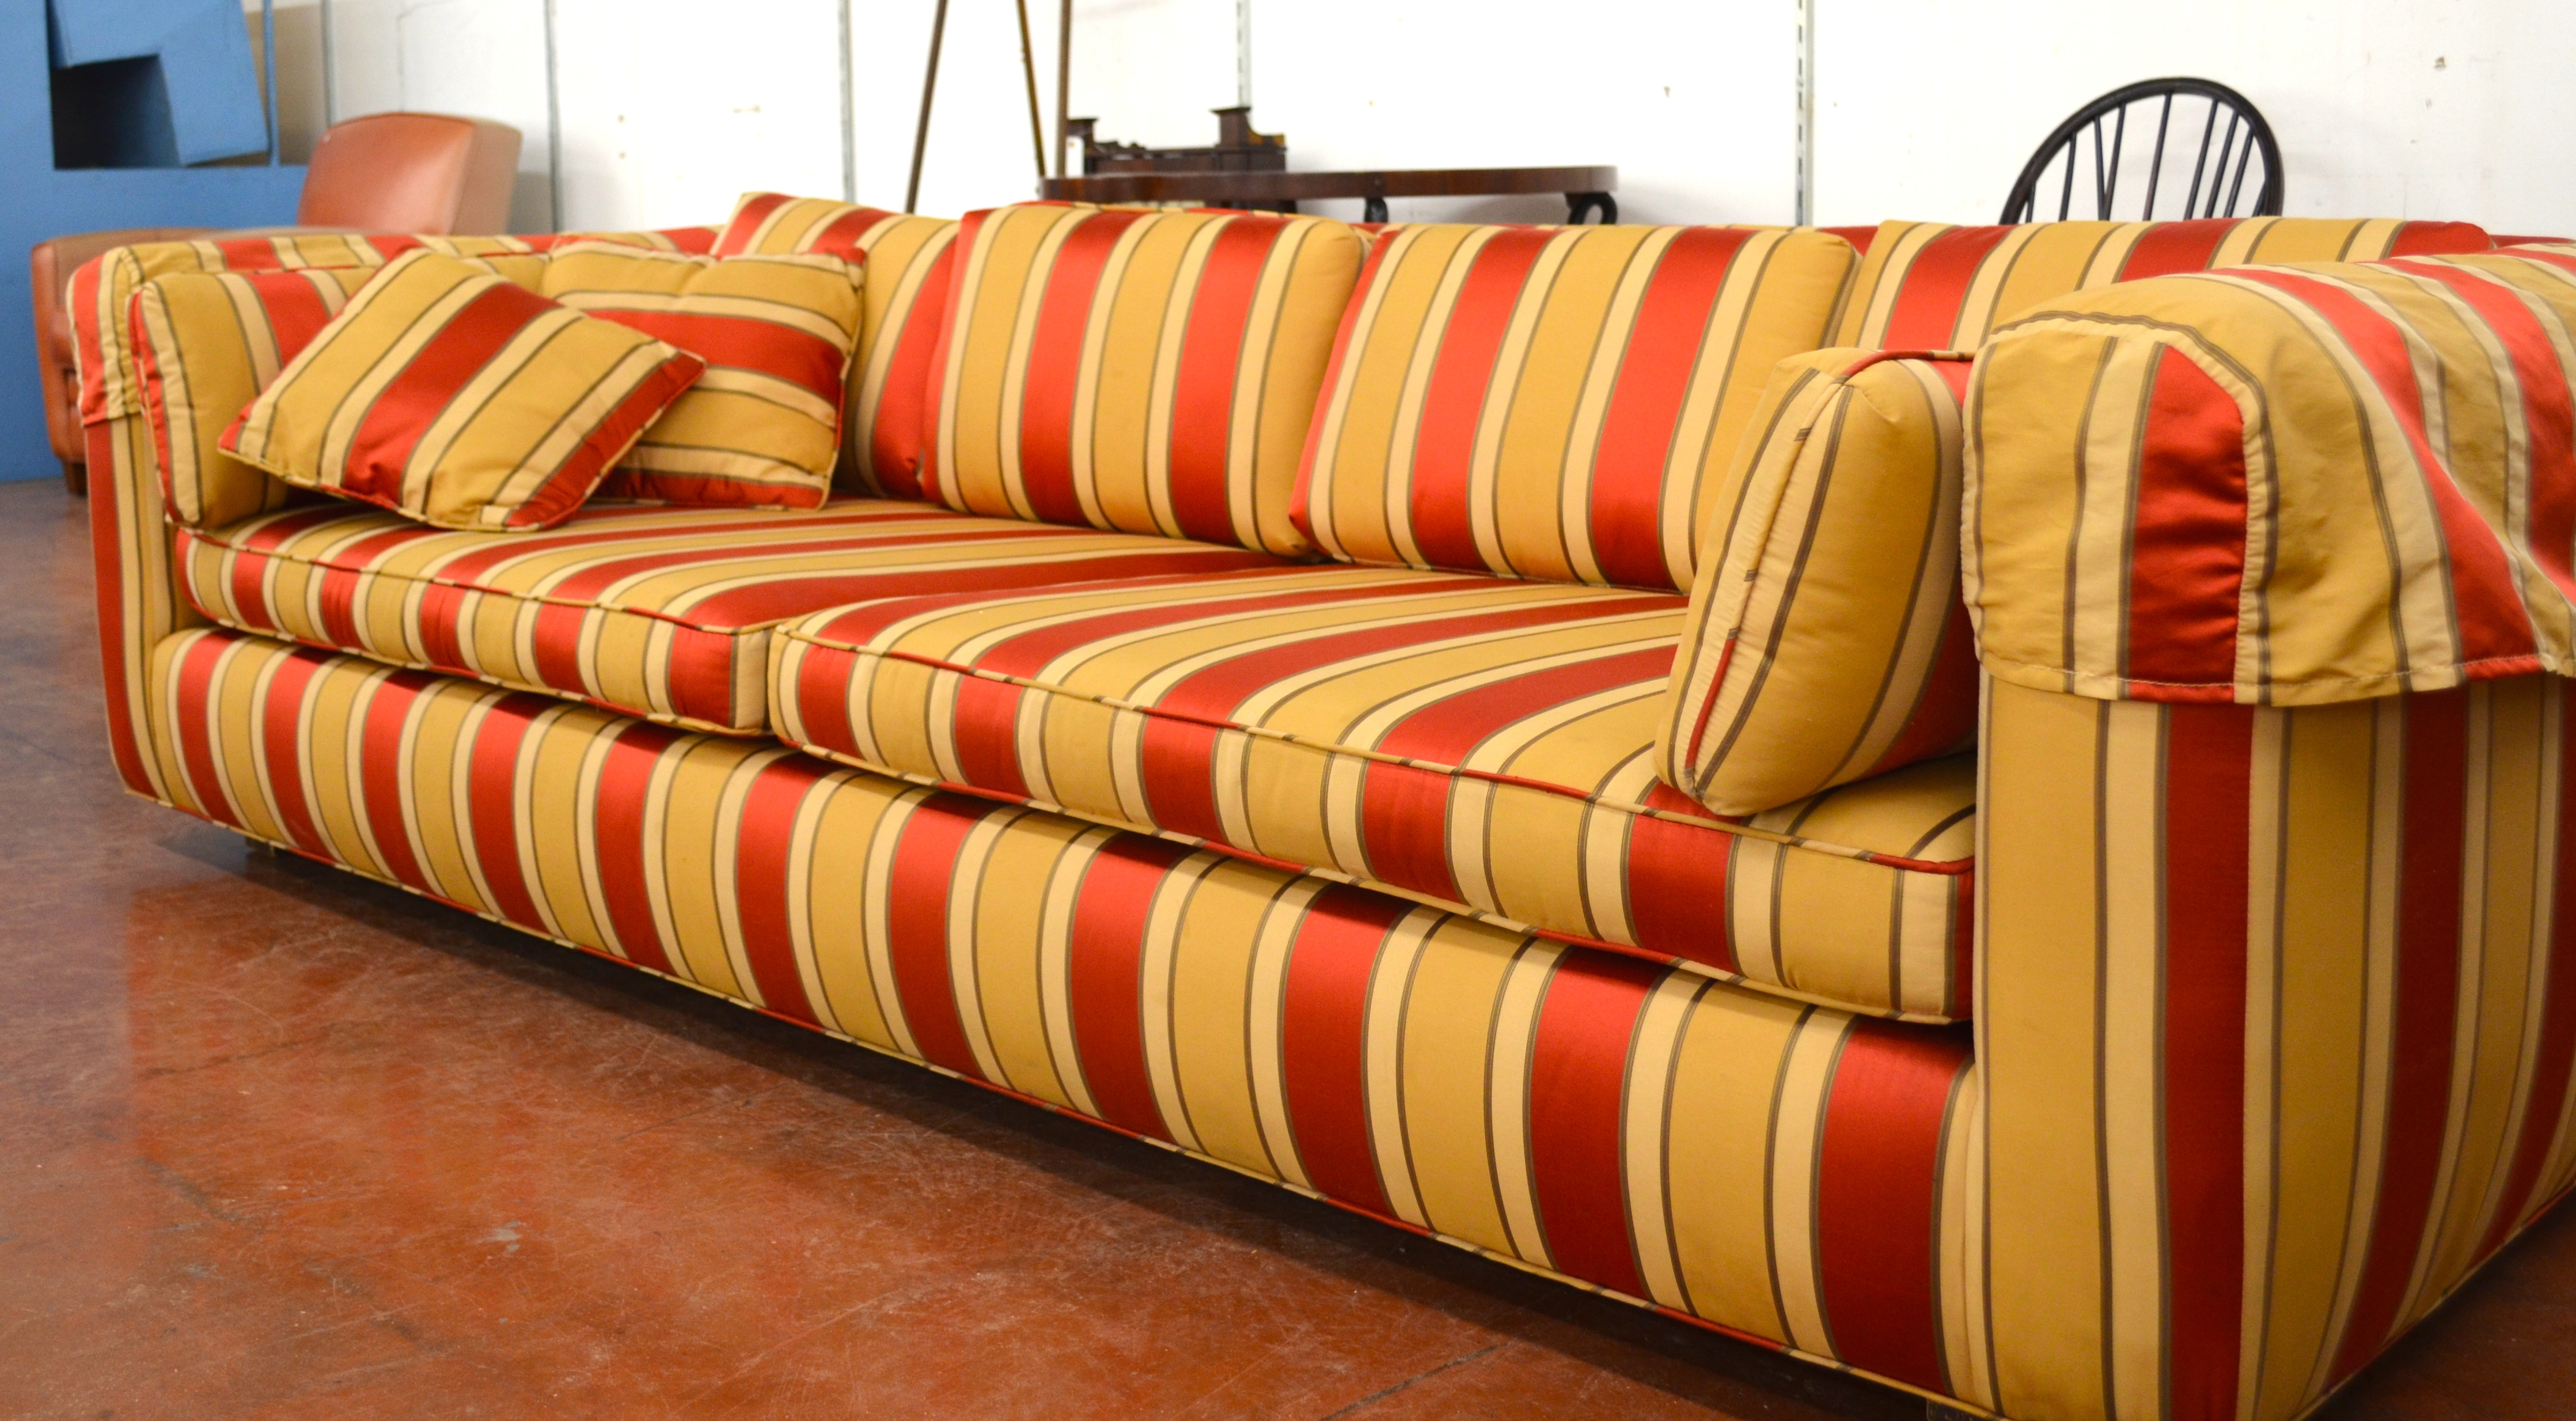 15 Red-Tan Couch